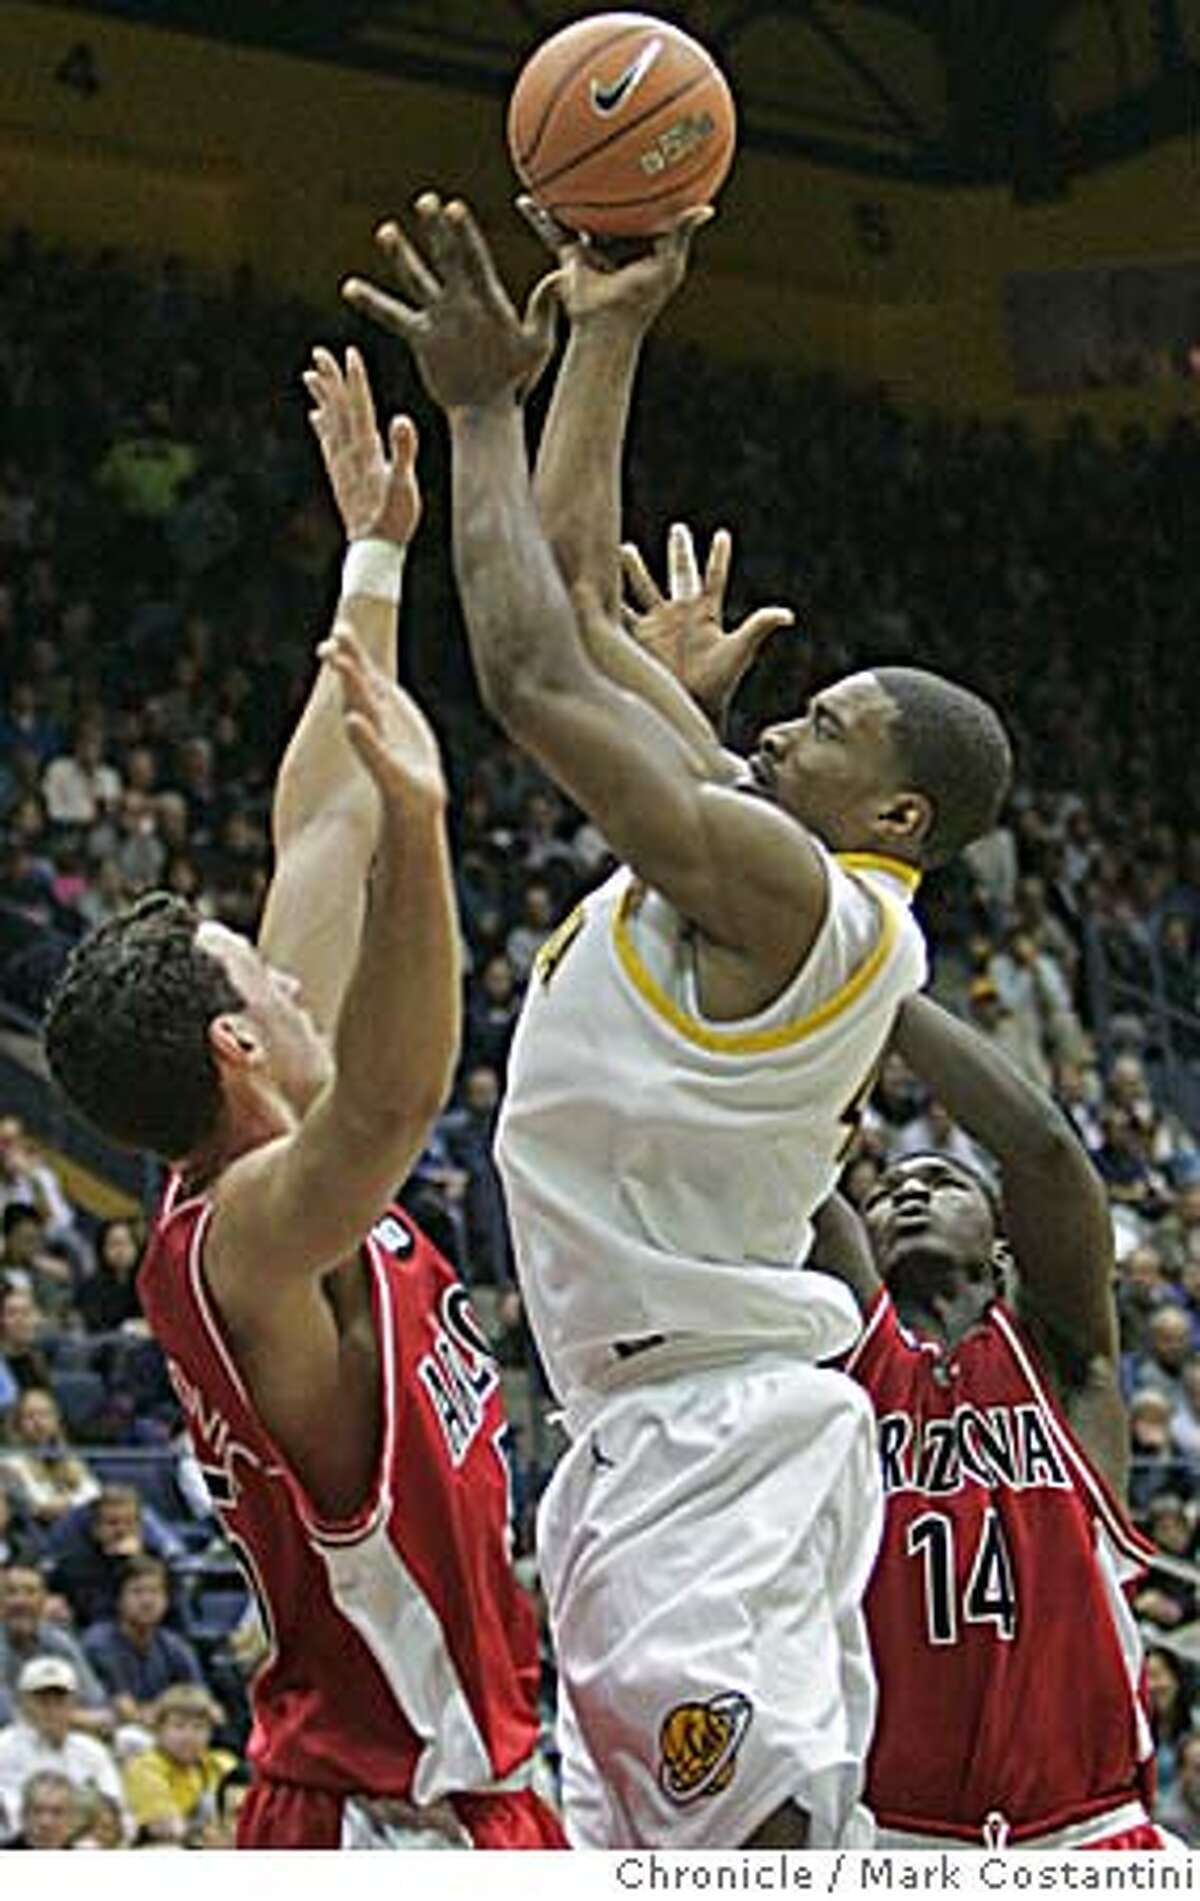 CAL_0226 {2/16/06} Cal's Leon Powe shoots and scores as Arizona defenders (l) Ivan Radenovic and Mohamed Tangara(14) cover on the play. Cal vs. Arizona in men's basketball. EVENT ON 2/16/06 IN BERKELEY. PHOTO: MARK COSTANTINI/SAN FRANCISCO CHRONICLE